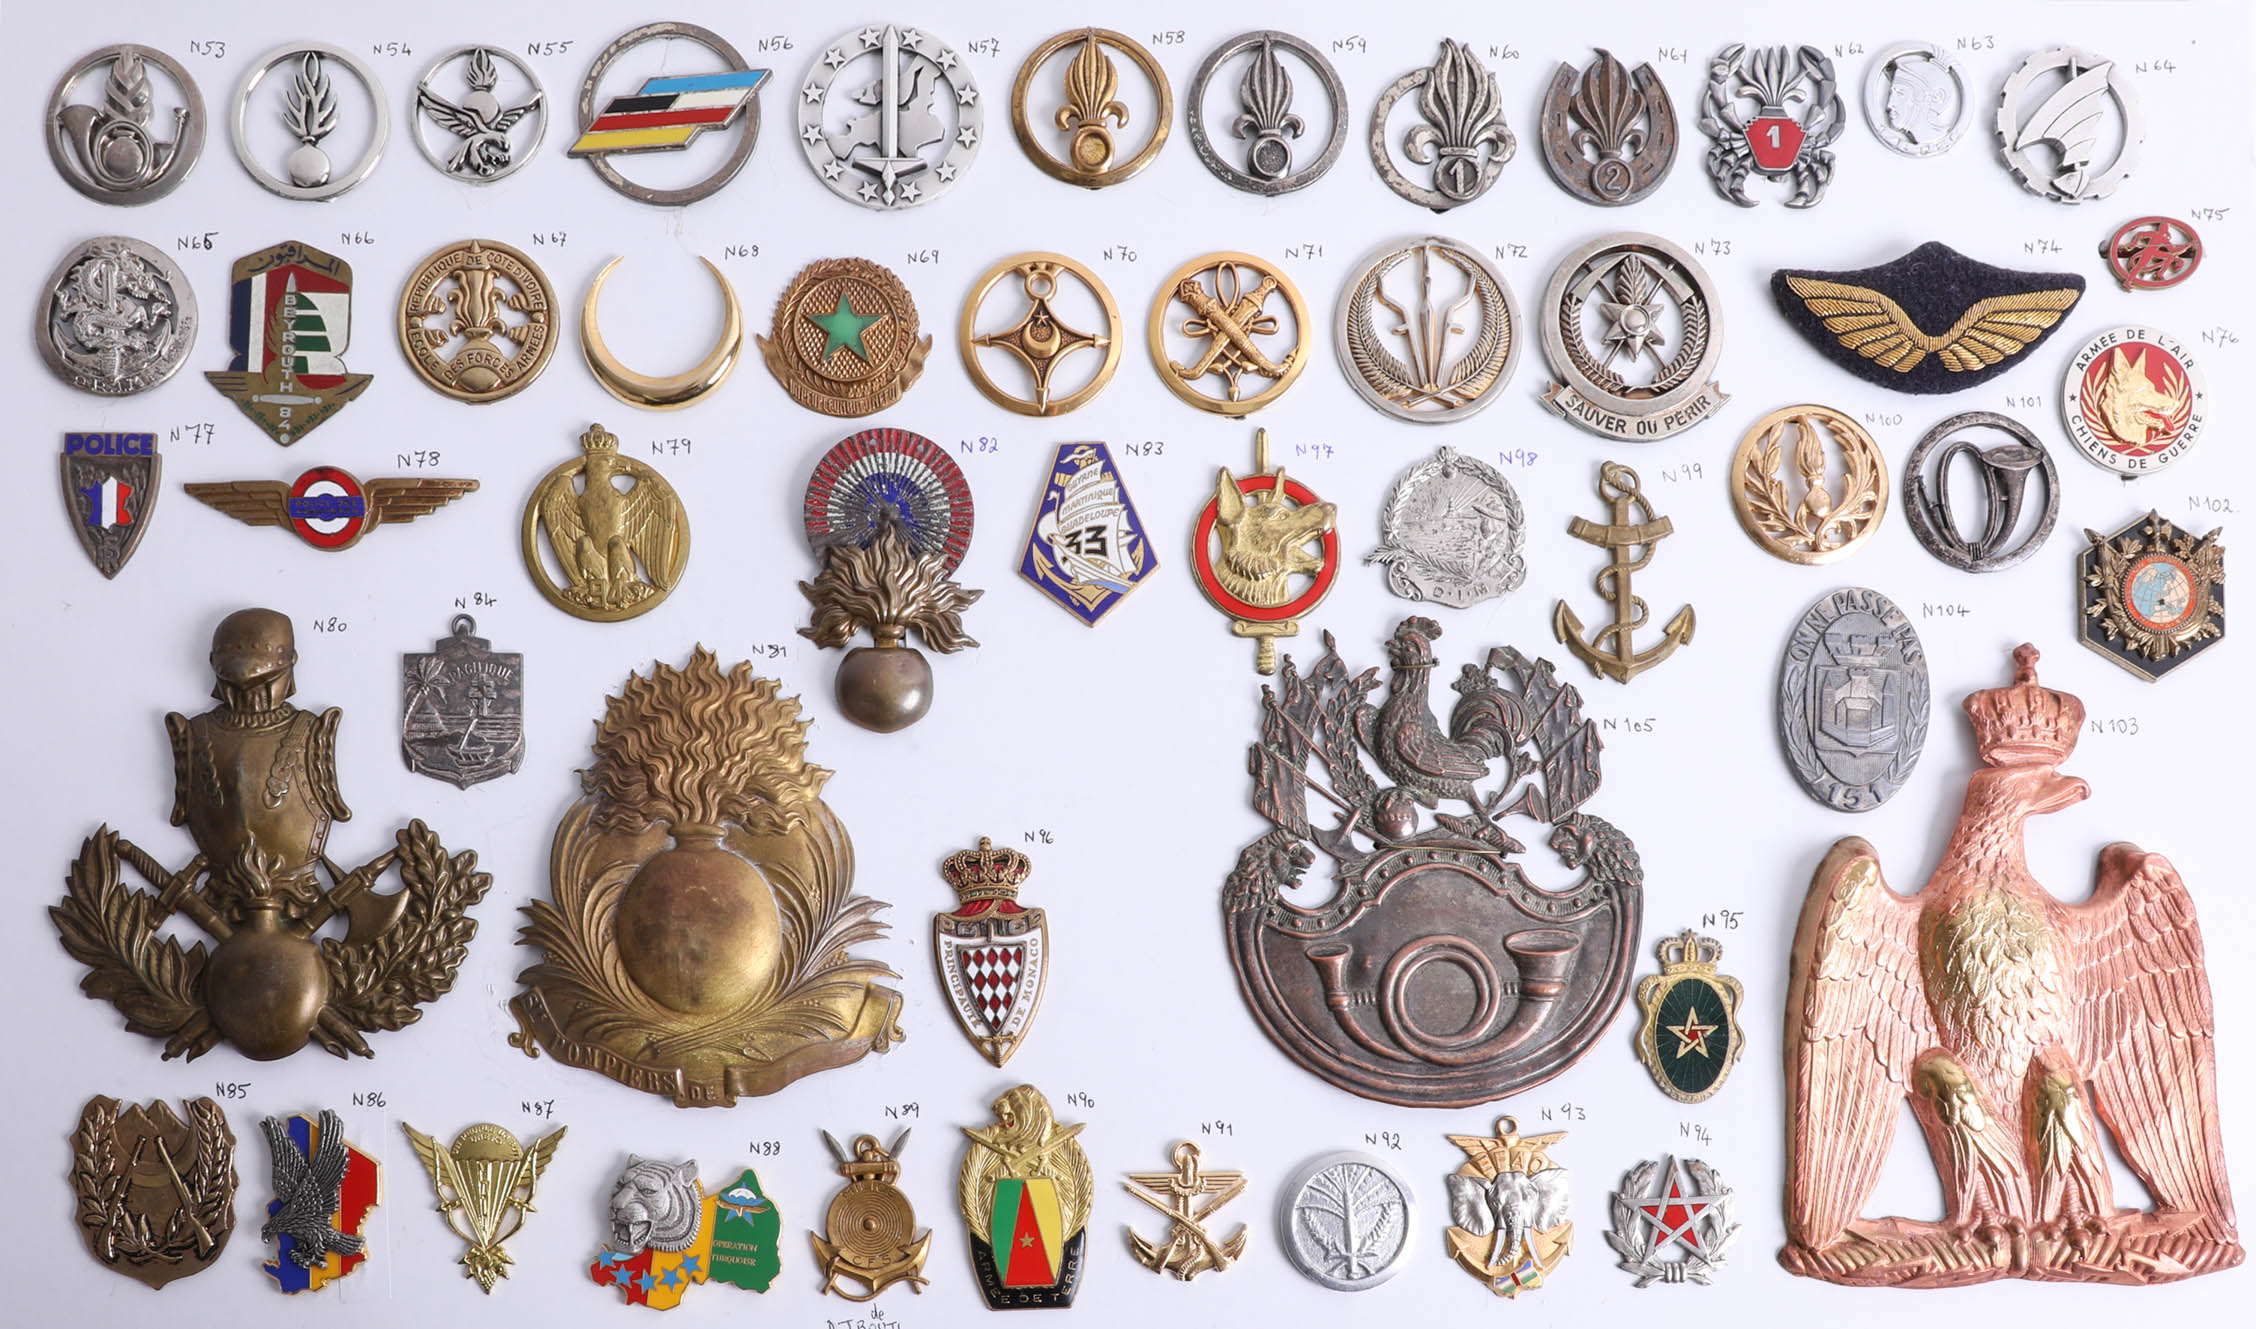 Lot 015 - A collection of approx. 52 military cap and other French badges including Foreign Legion and